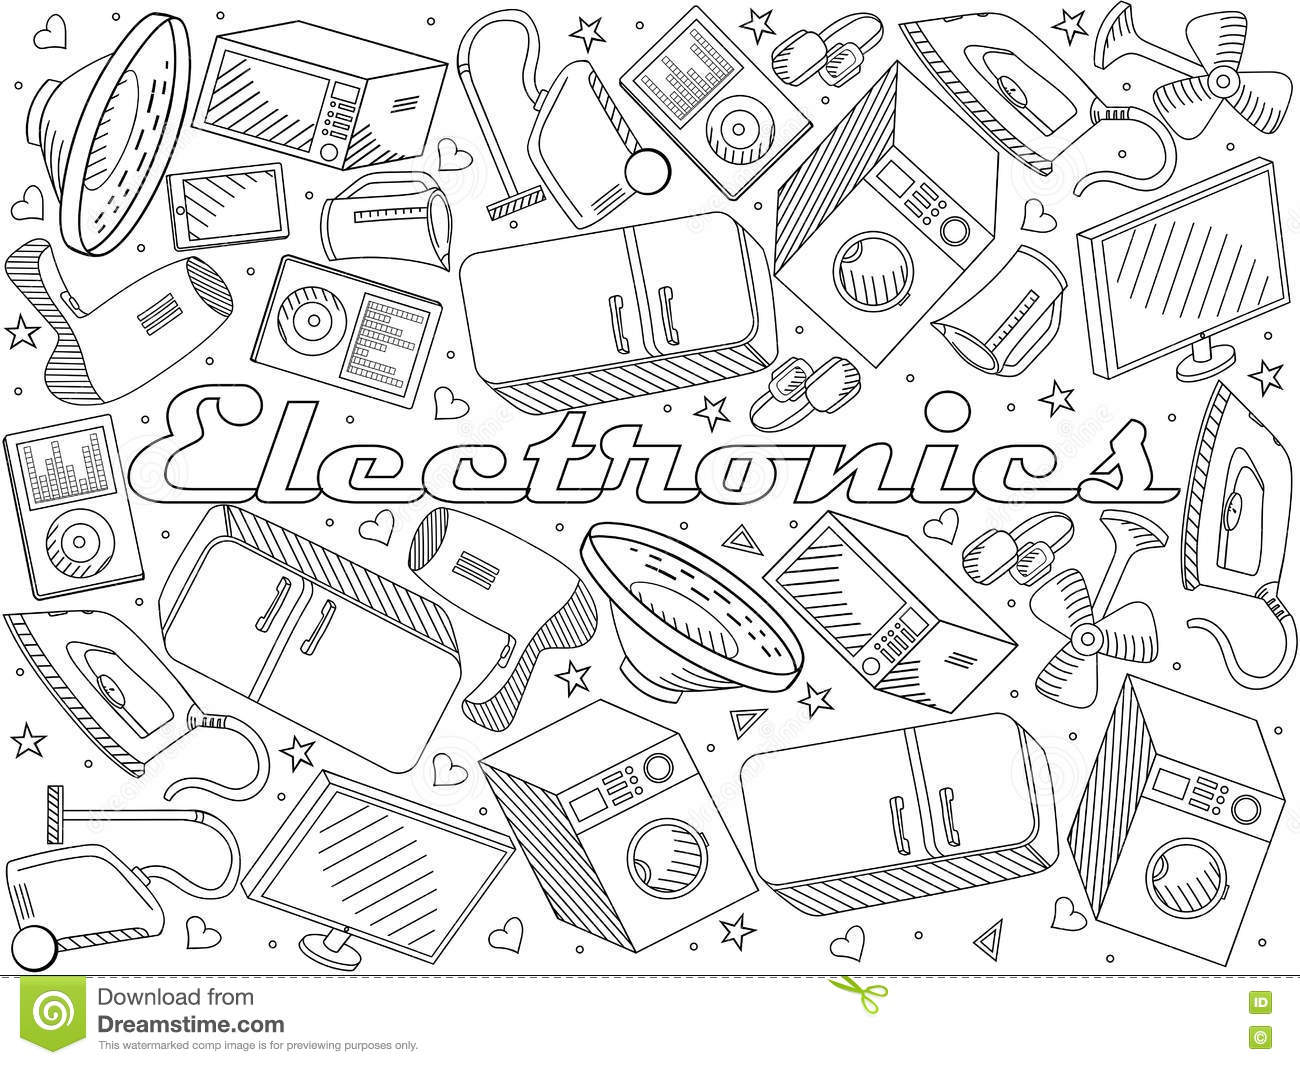 Line Art Design Illustration : Electronics line art design vector illustration stock